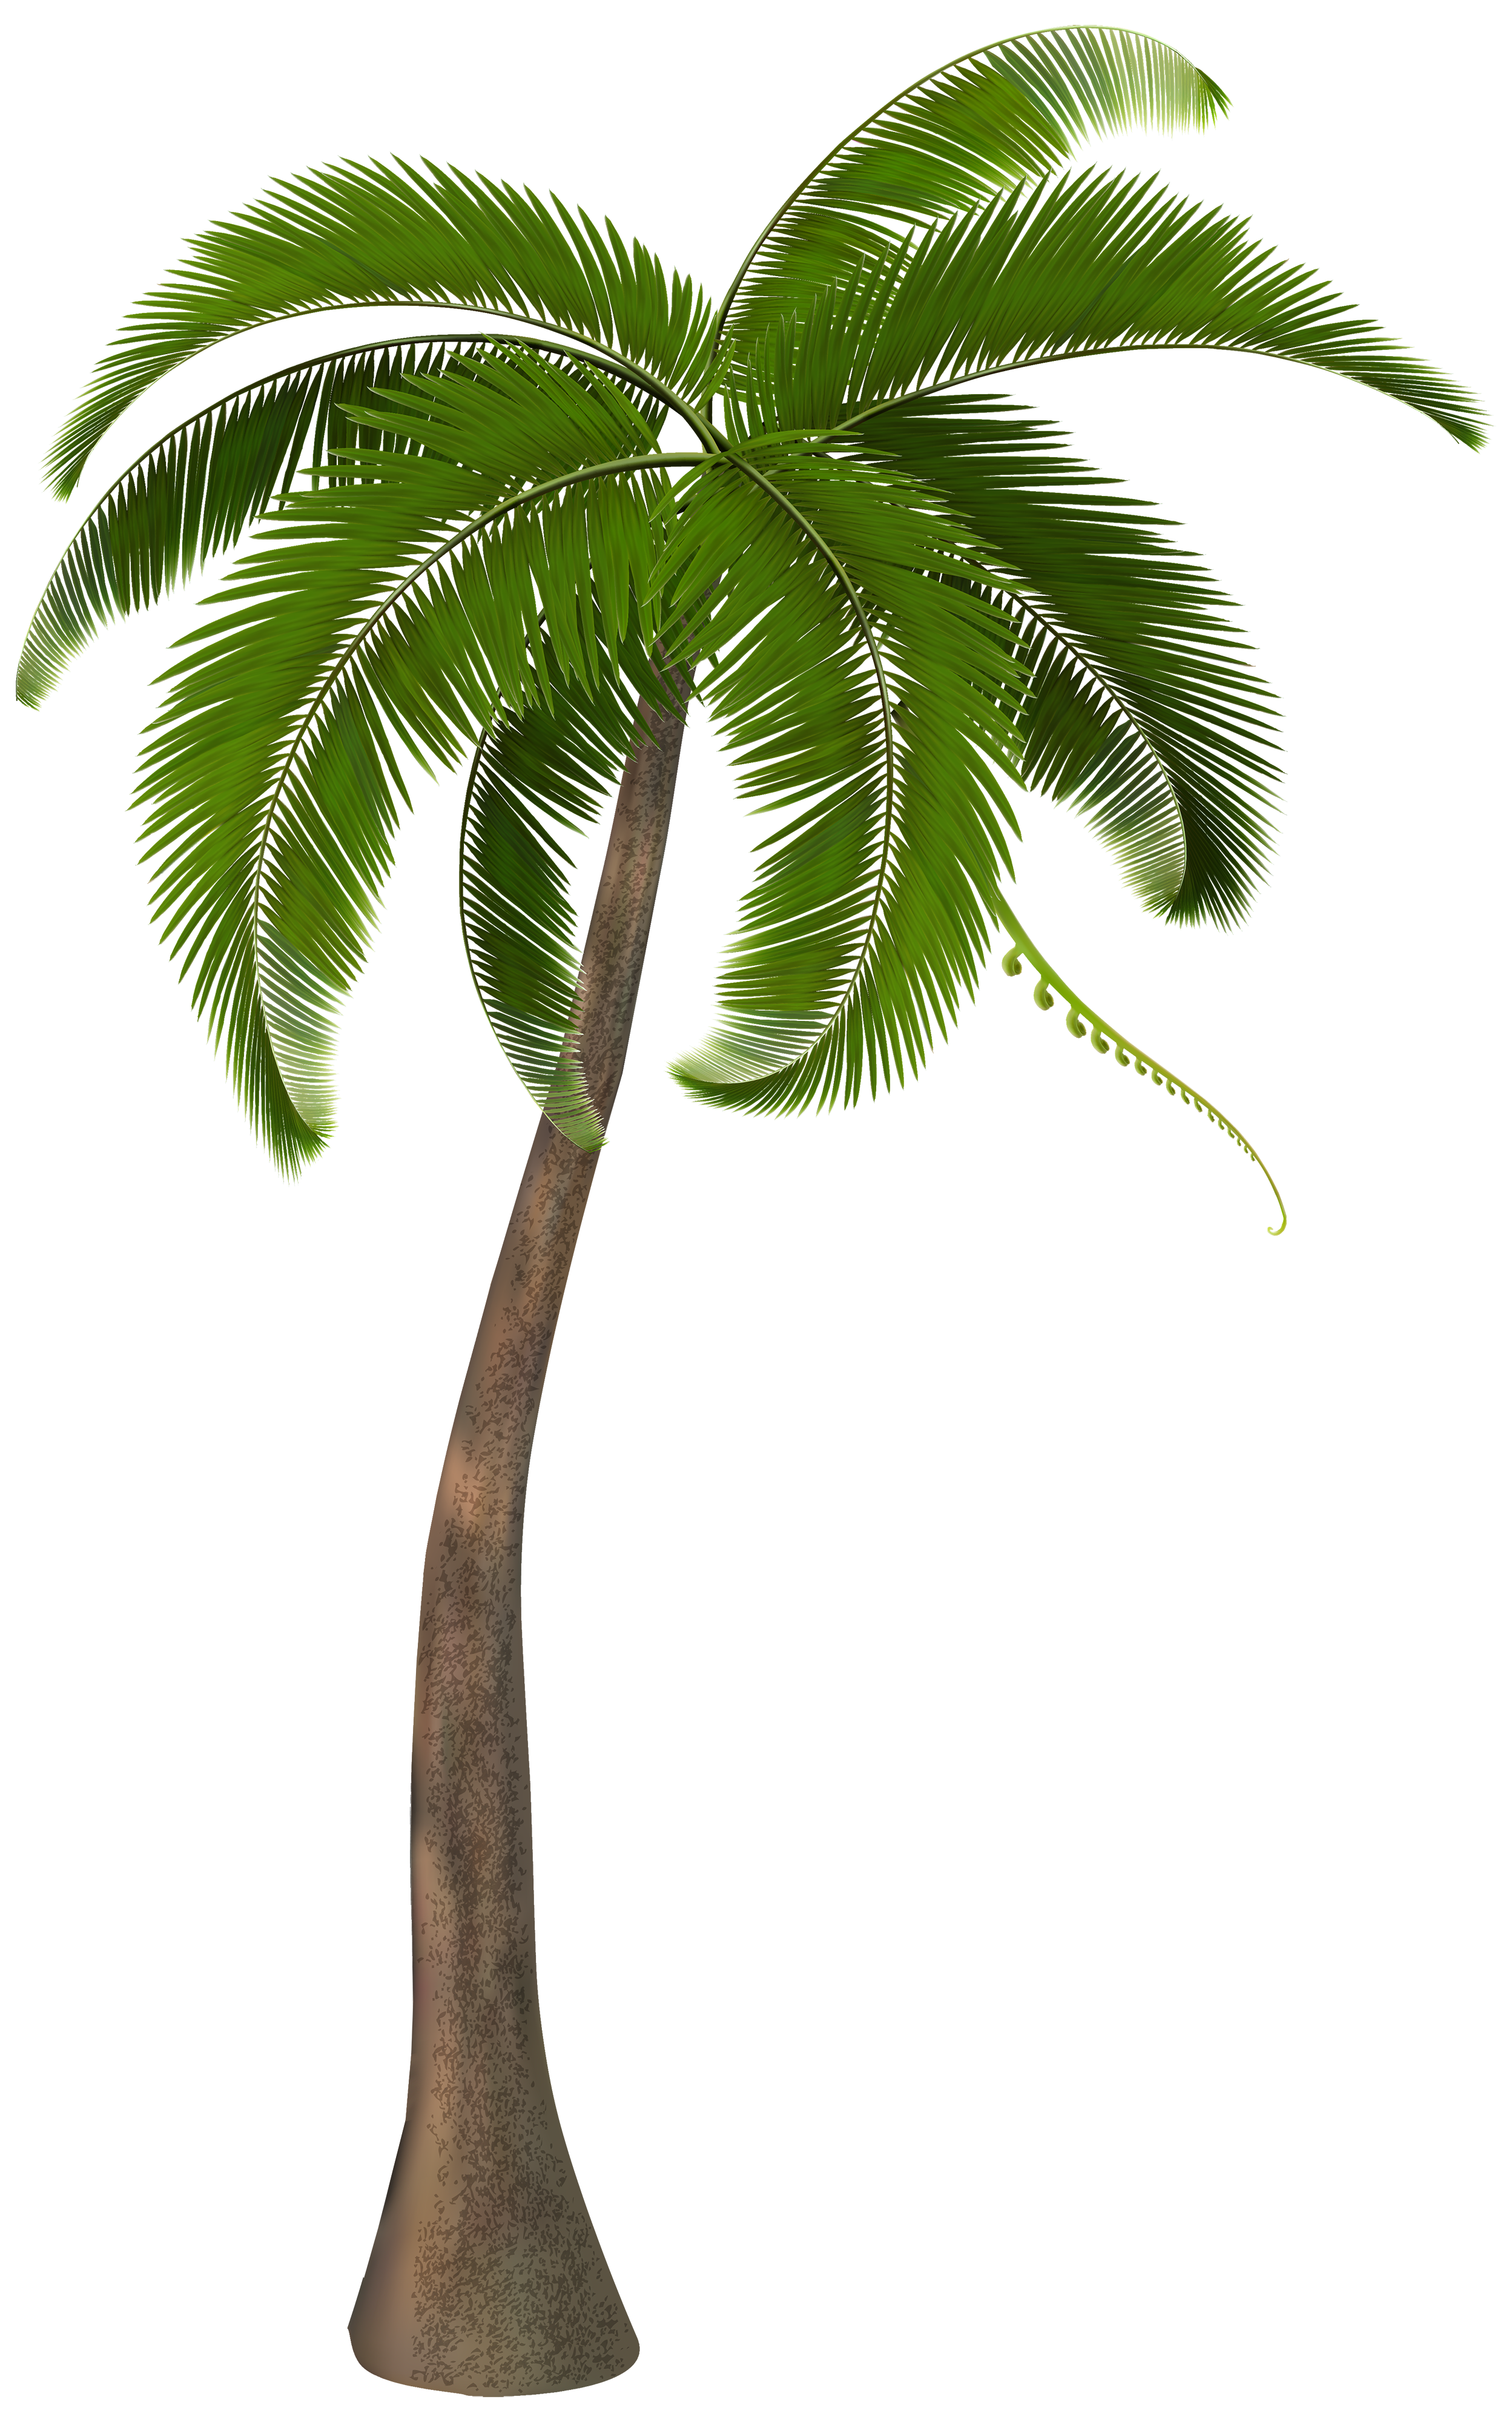 palm tree png transparent palm tree images pluspng #11010